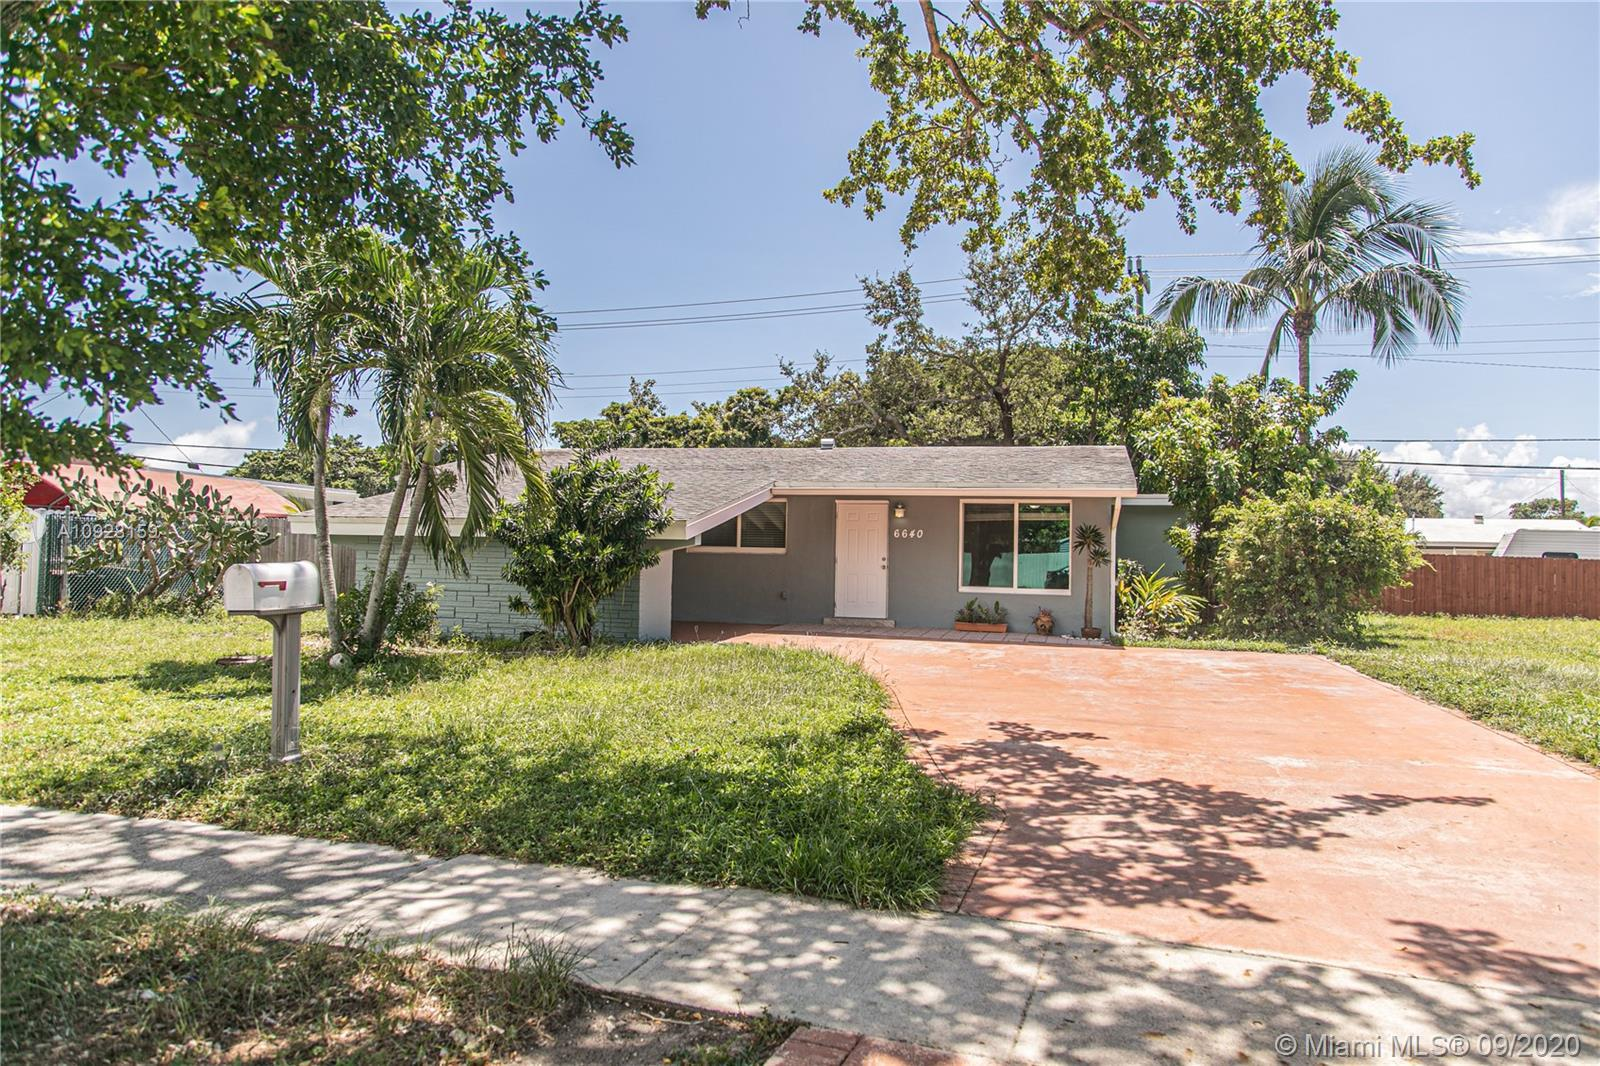 Newly remodeled 3/2 single family home with brand new appliances, impact windows throughout, newer a